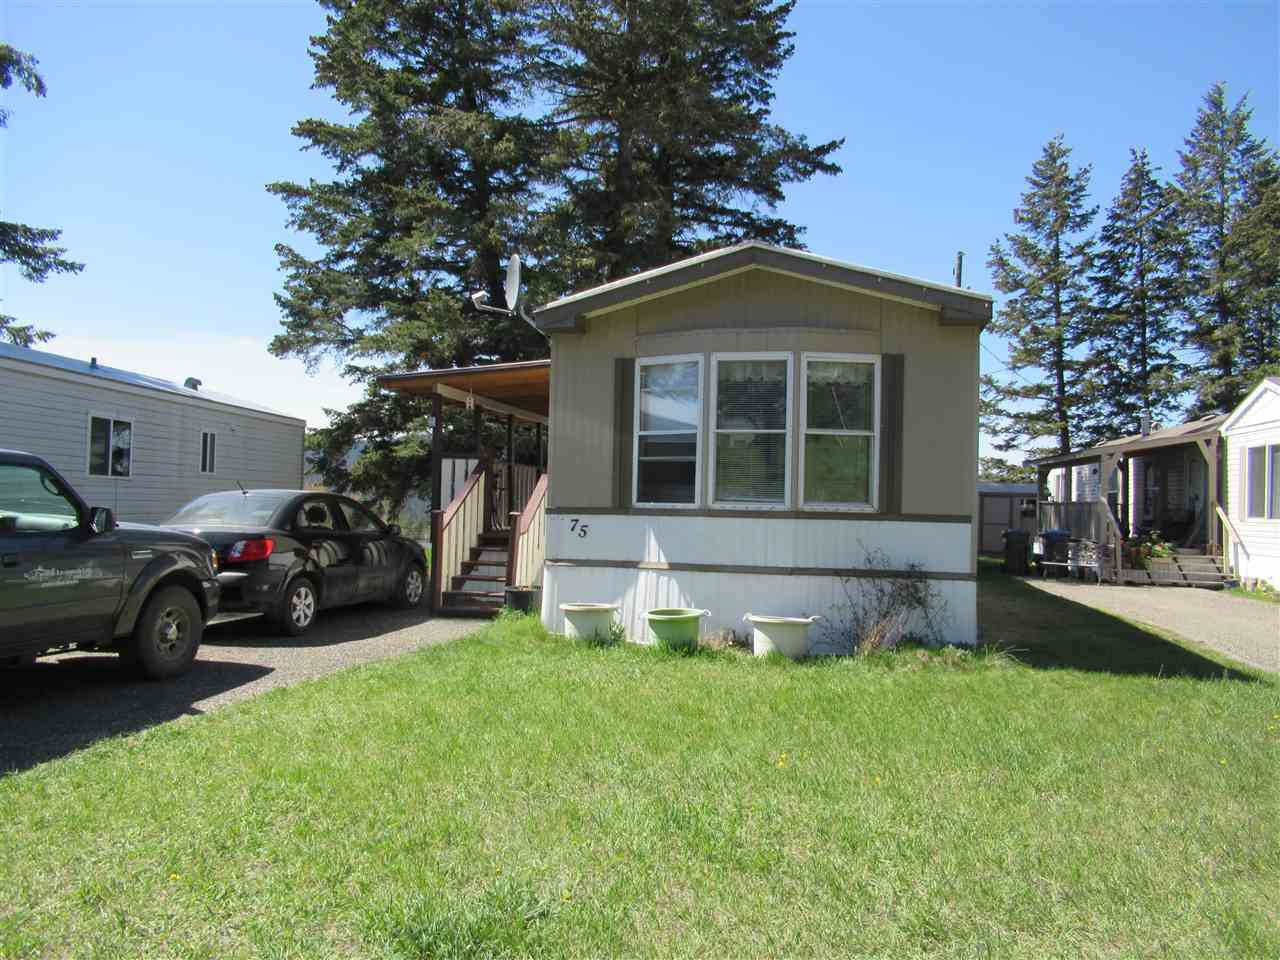 Photo 20: Photos: 75 770 11TH Avenue in Williams Lake: Williams Lake - City Manufactured Home for sale (Williams Lake (Zone 27))  : MLS®# R2368538